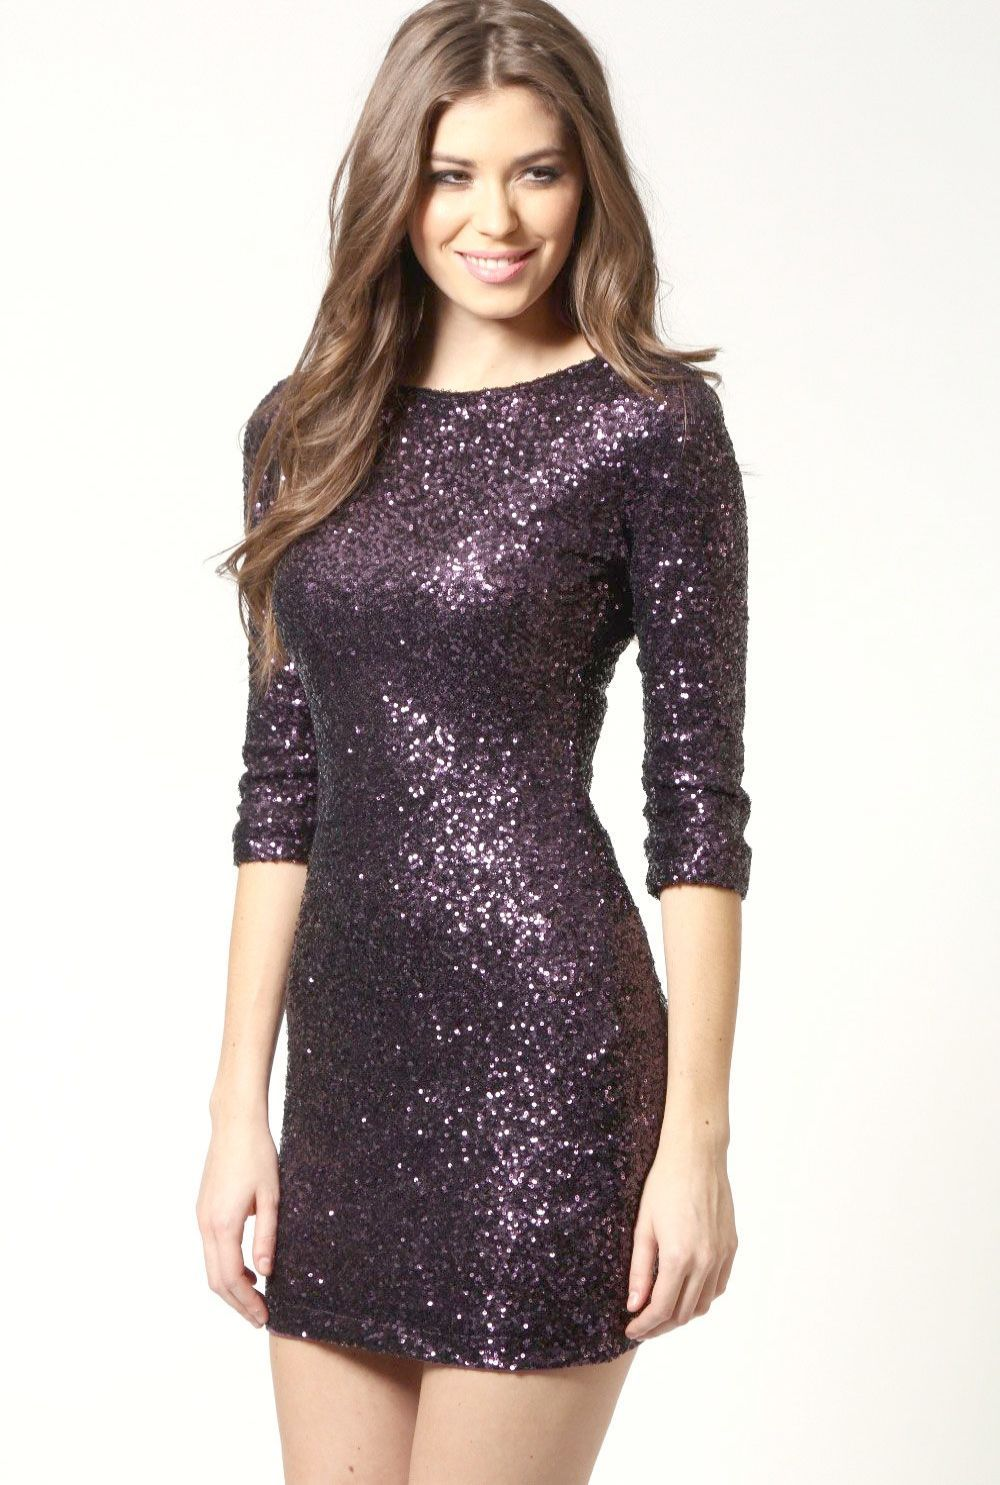 77d431bf64b Glitter Going Out Dress Party Dress New Look